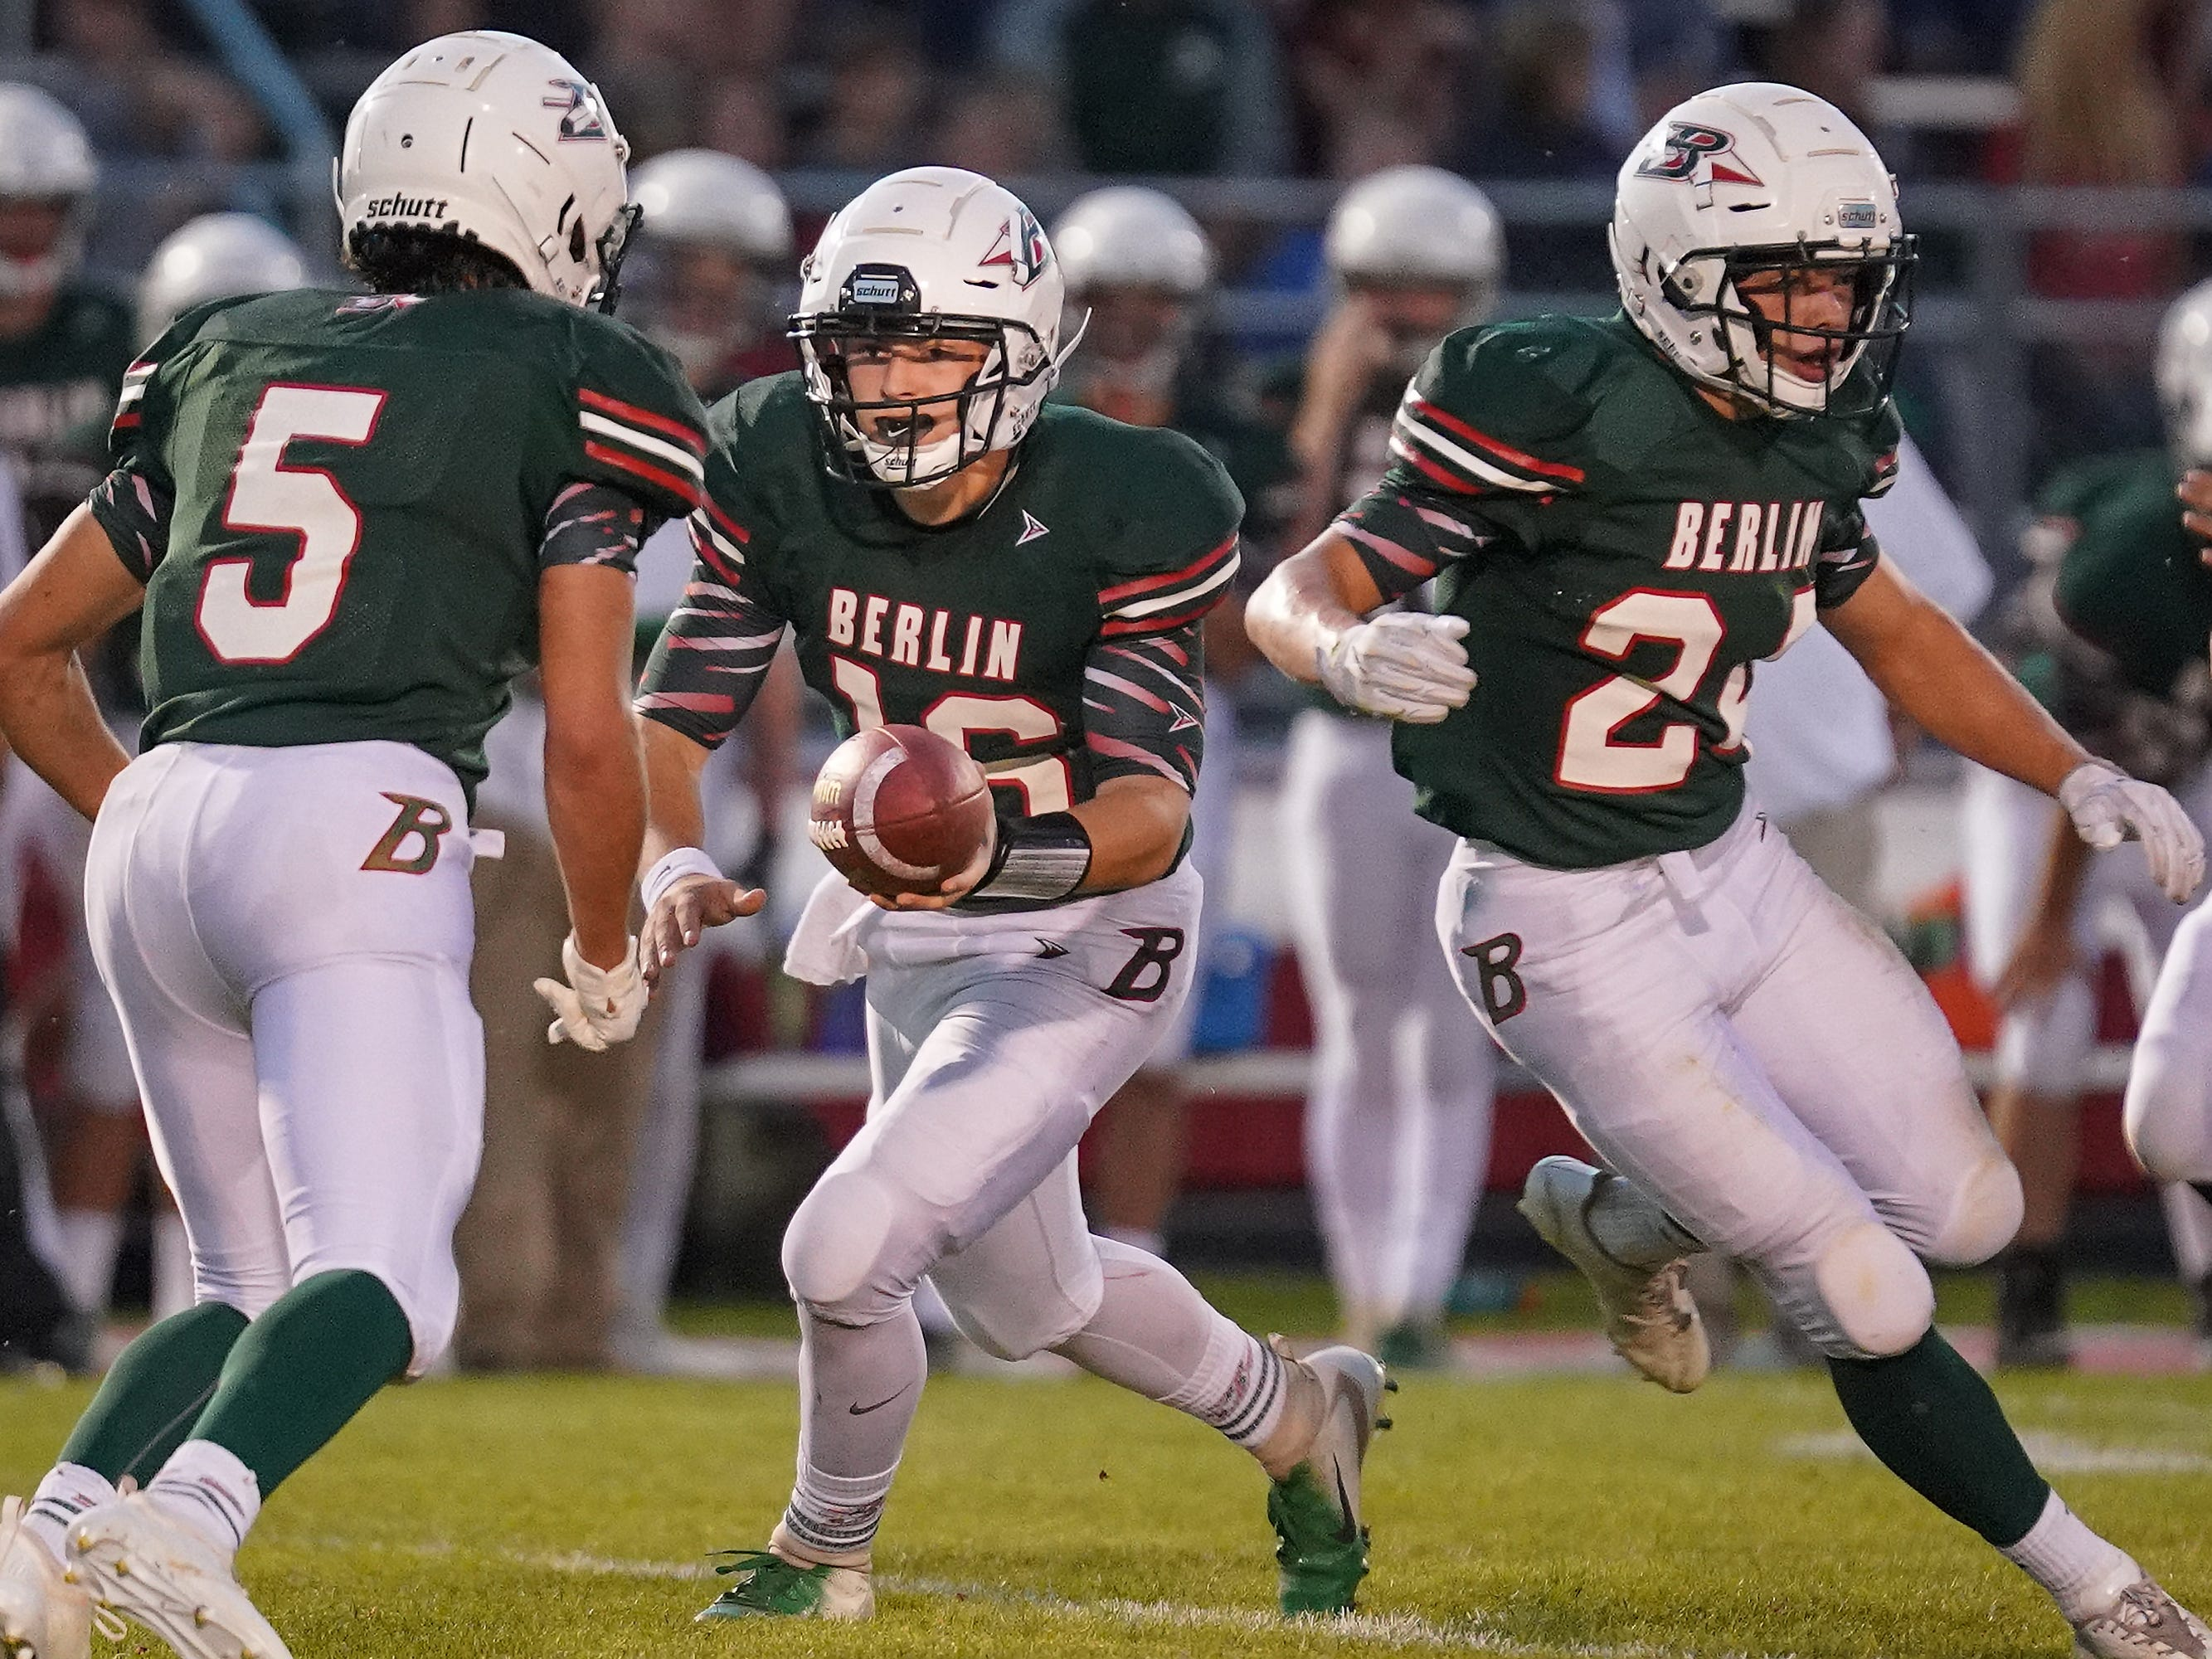 Berlin quartertback Lane Sobieski (16) hands off to Alec Moriarty (5) of Berlin. The Berlin Indians hosted the Winneconne Wolves in an East Central Conference matchup Friday evening, September 14, 2018.